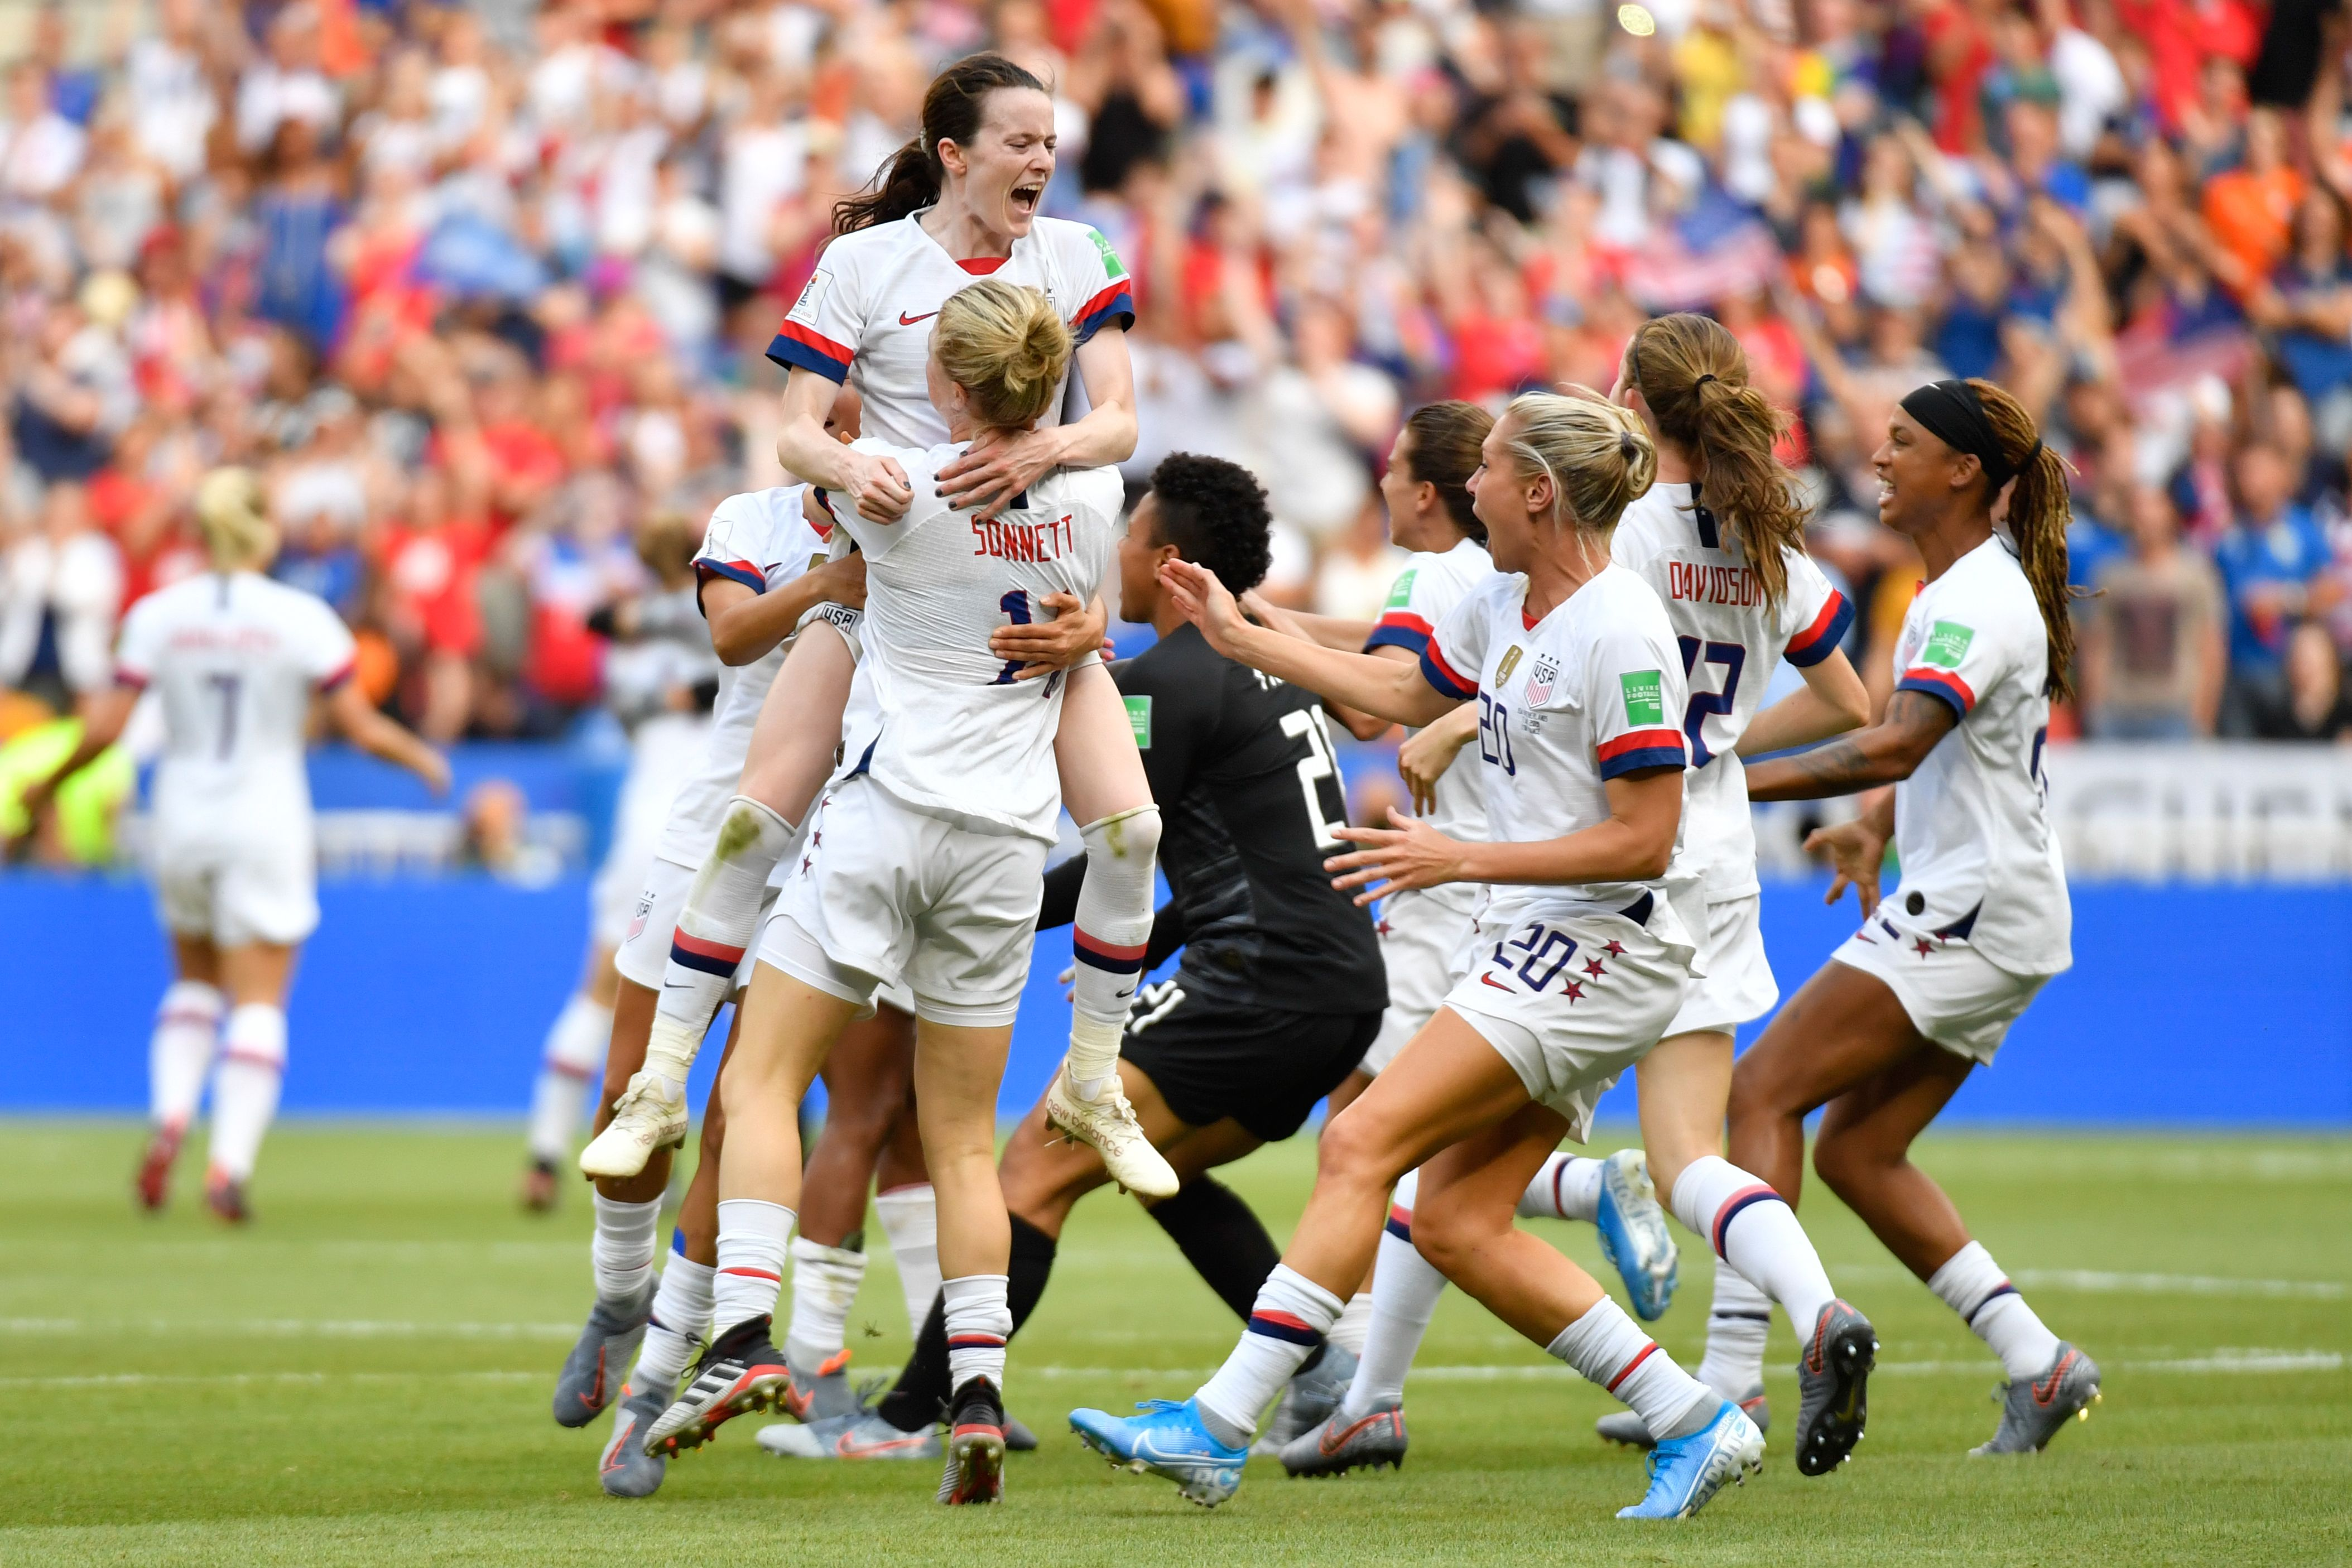 #TSRSports: The U.S. Women's National Soccer Team Wins The 2019 Women's World Cup!